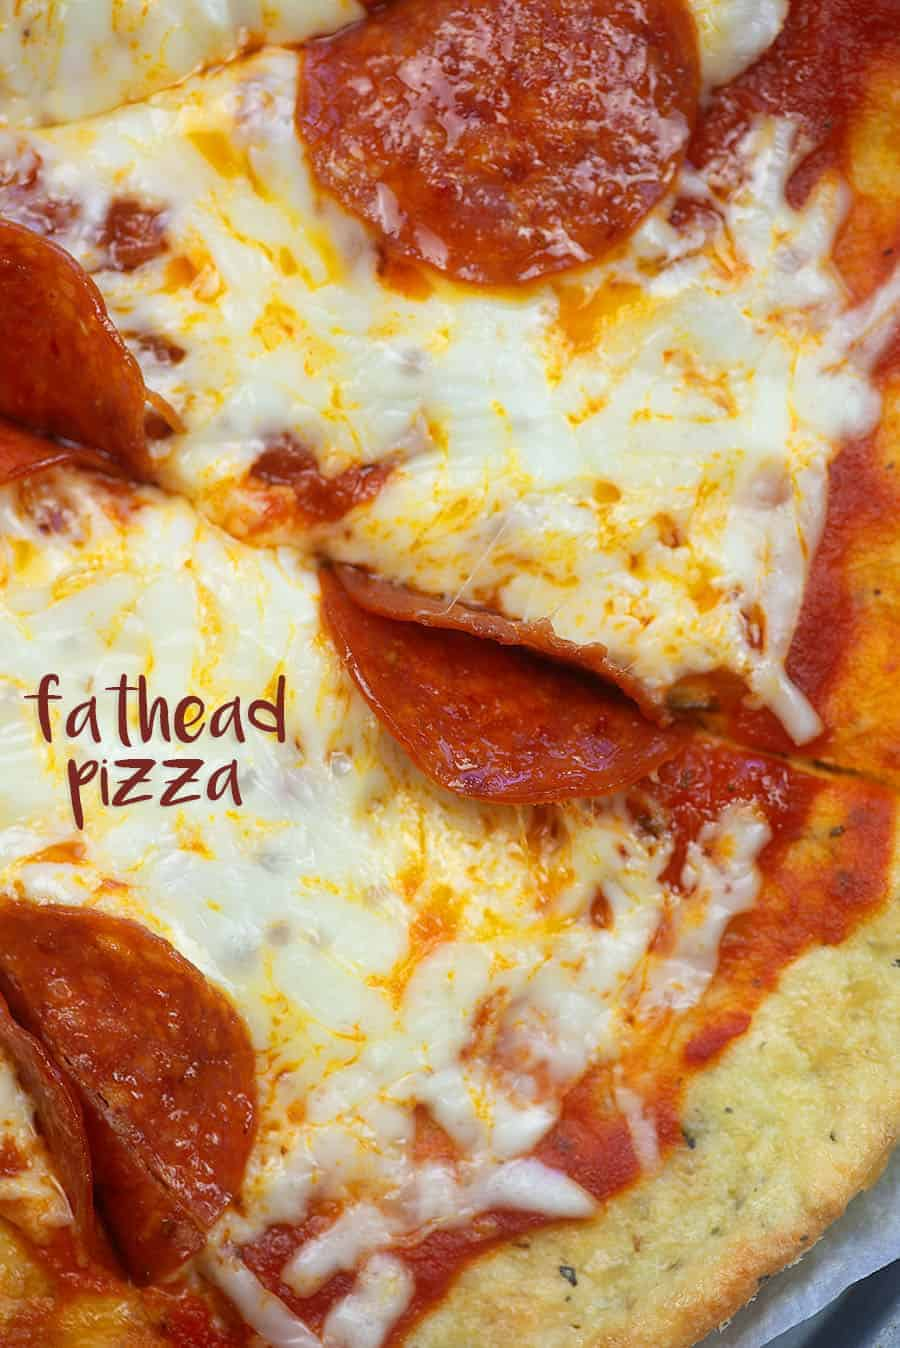 Fathead Pizza - it's low carb, keto friendly, and tastes amazing! #keto #lchf #lowcarb #pizza